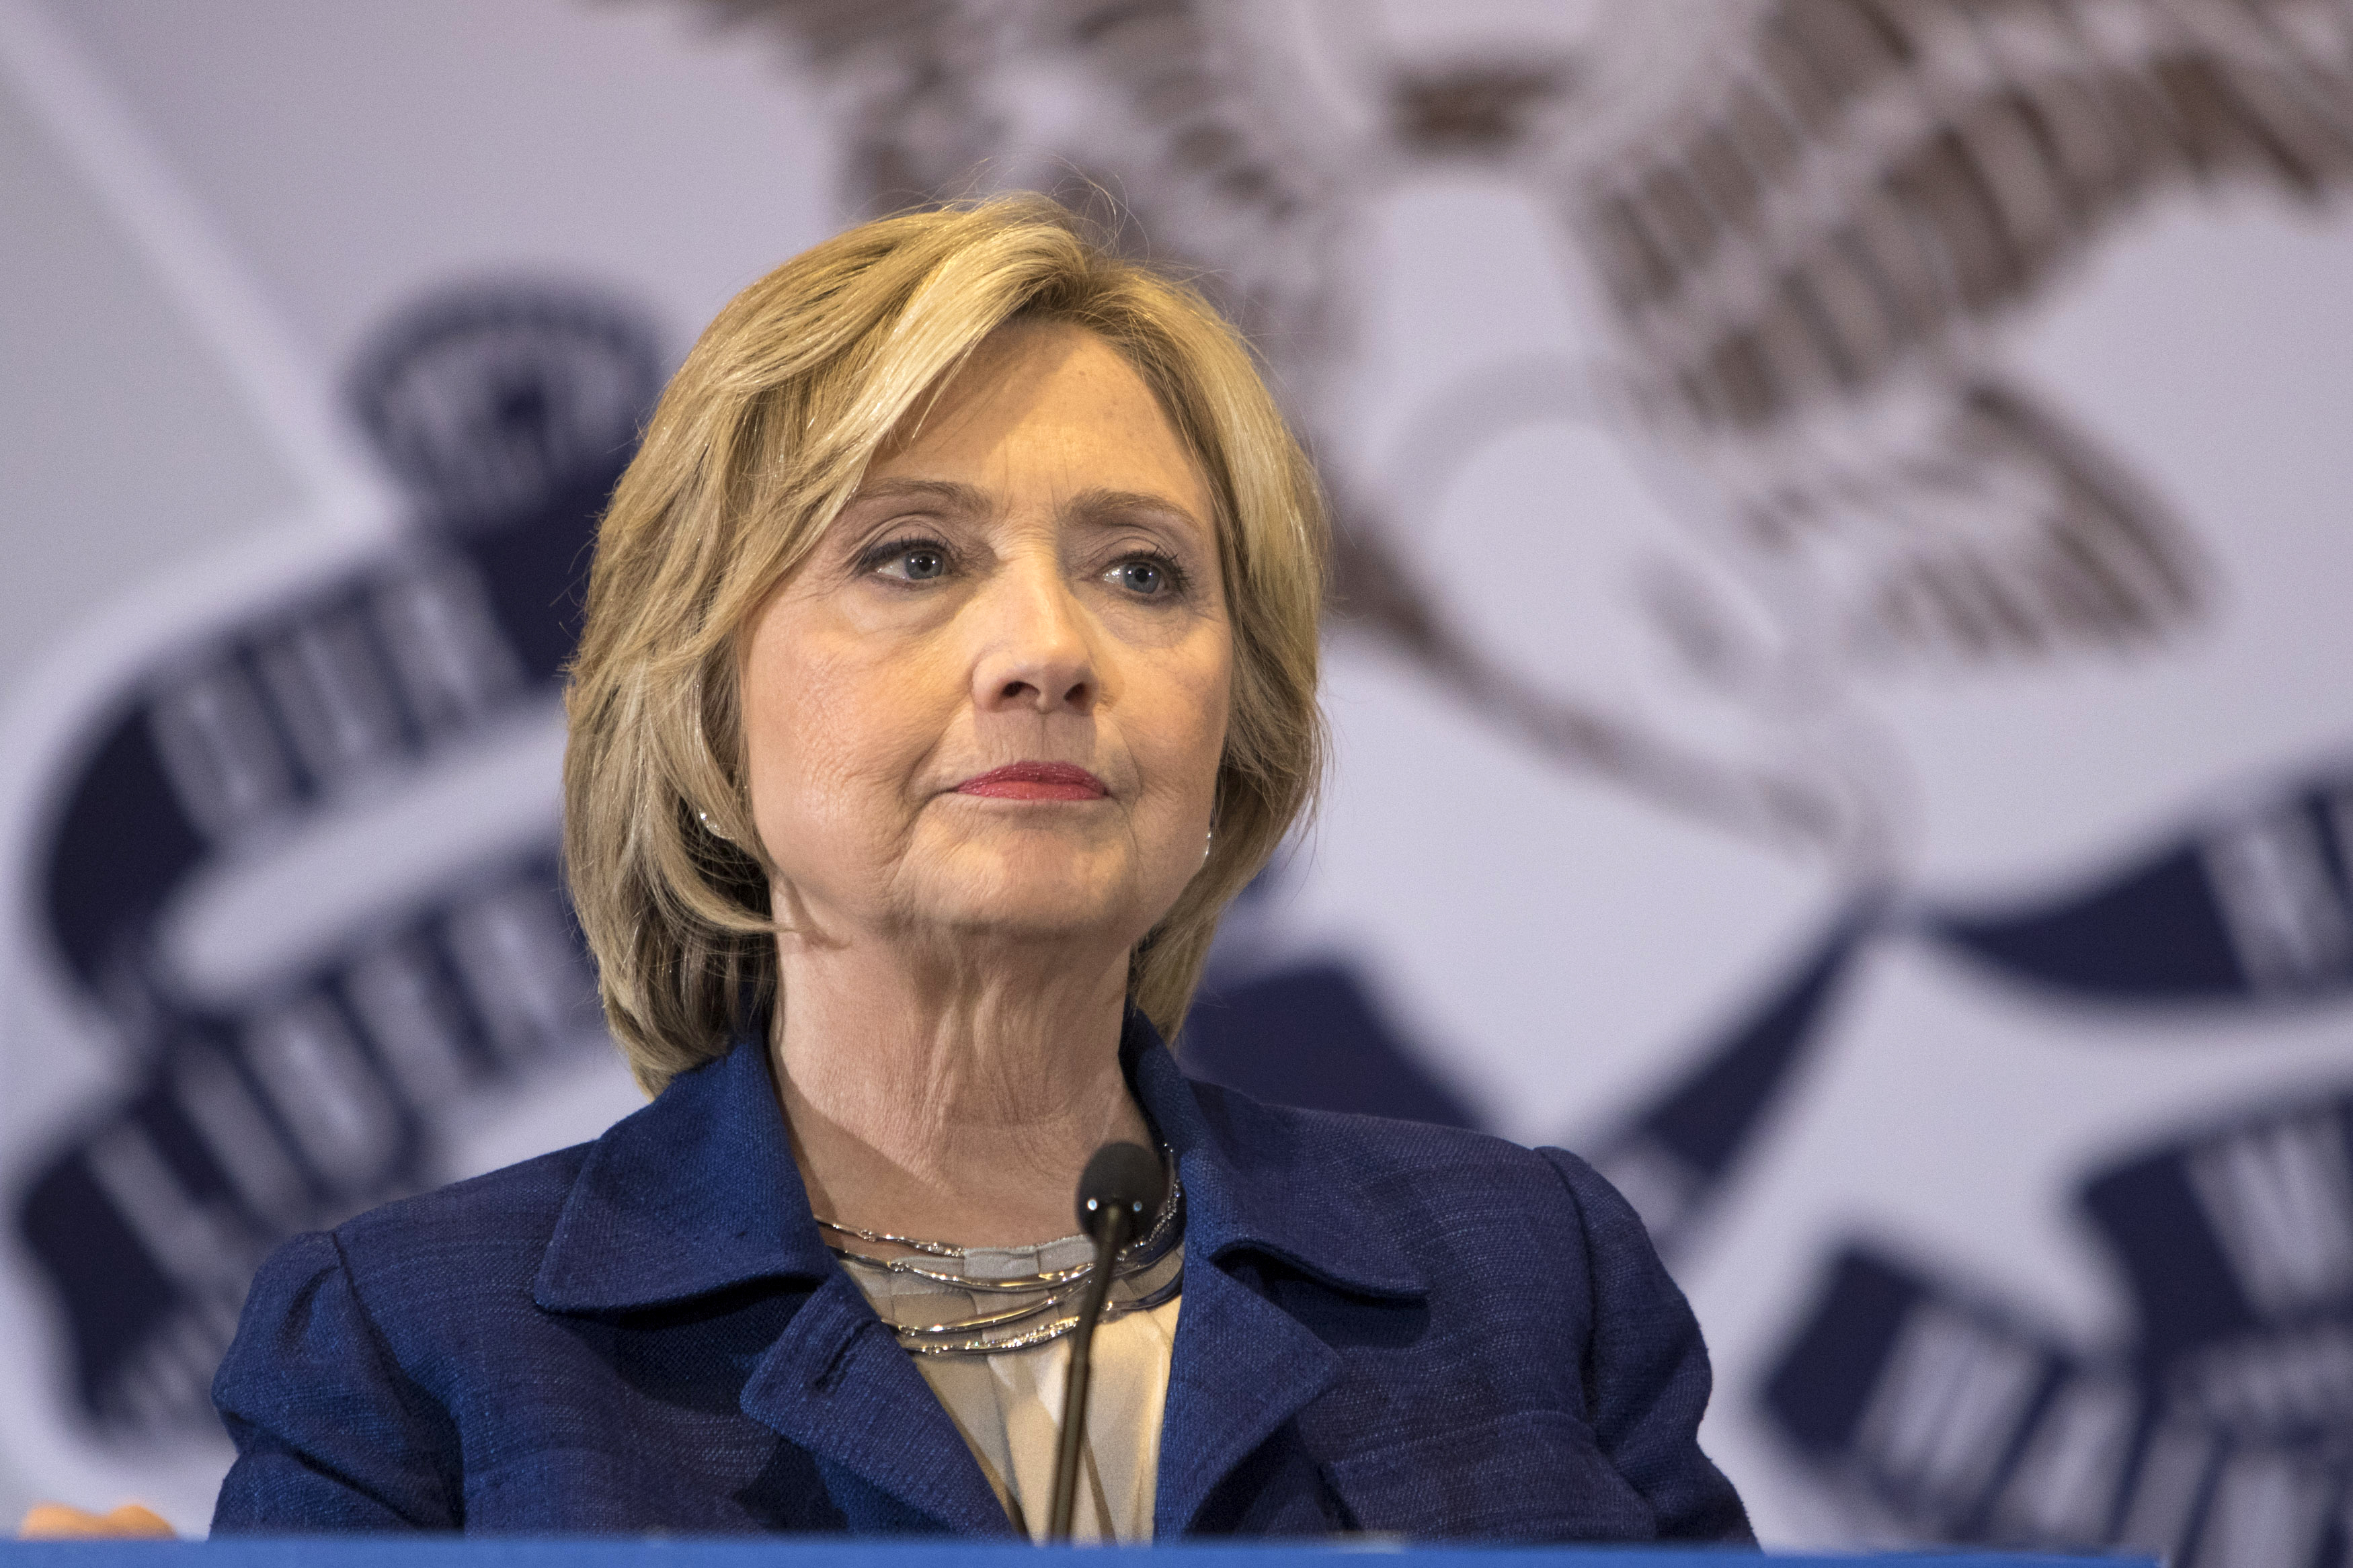 Democratic presidential candidate Hillary Rodham Clinton listens to a question from the media following an organizing event at the University of Northern Iowa in Cedar Falls.